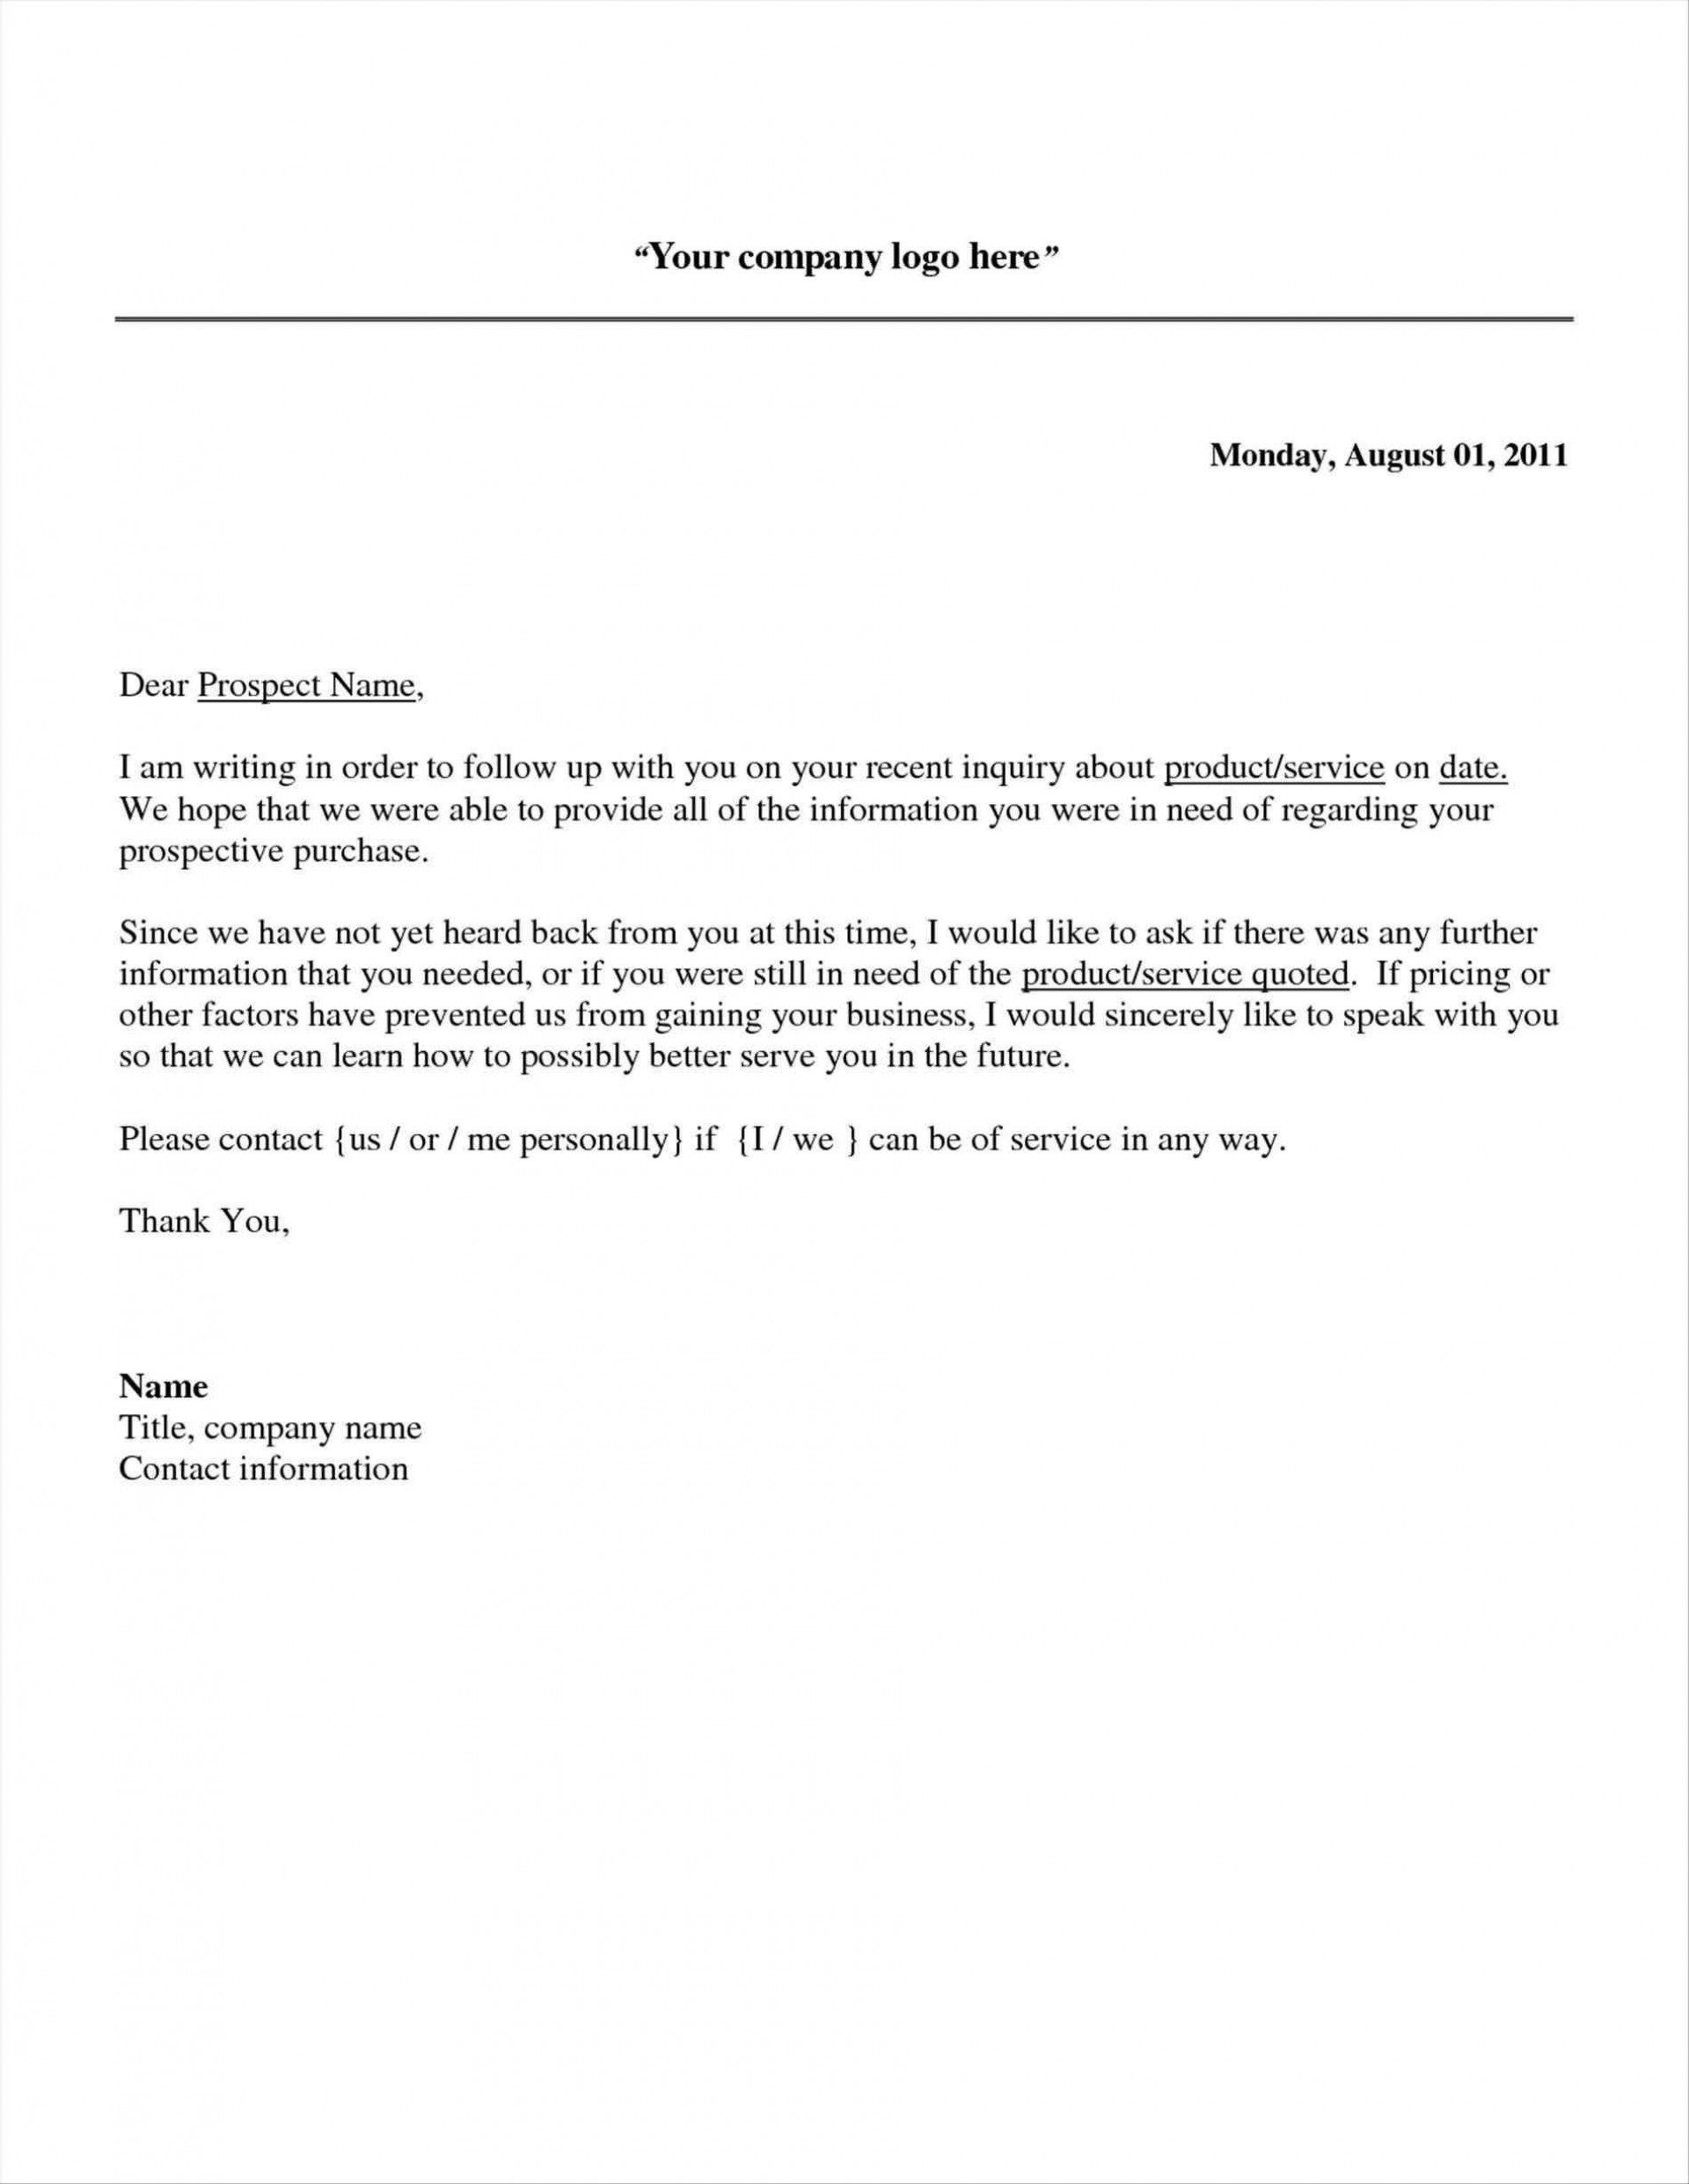 005 Unforgettable Follow Up Email Sample After No Response Template Inspiration 1920